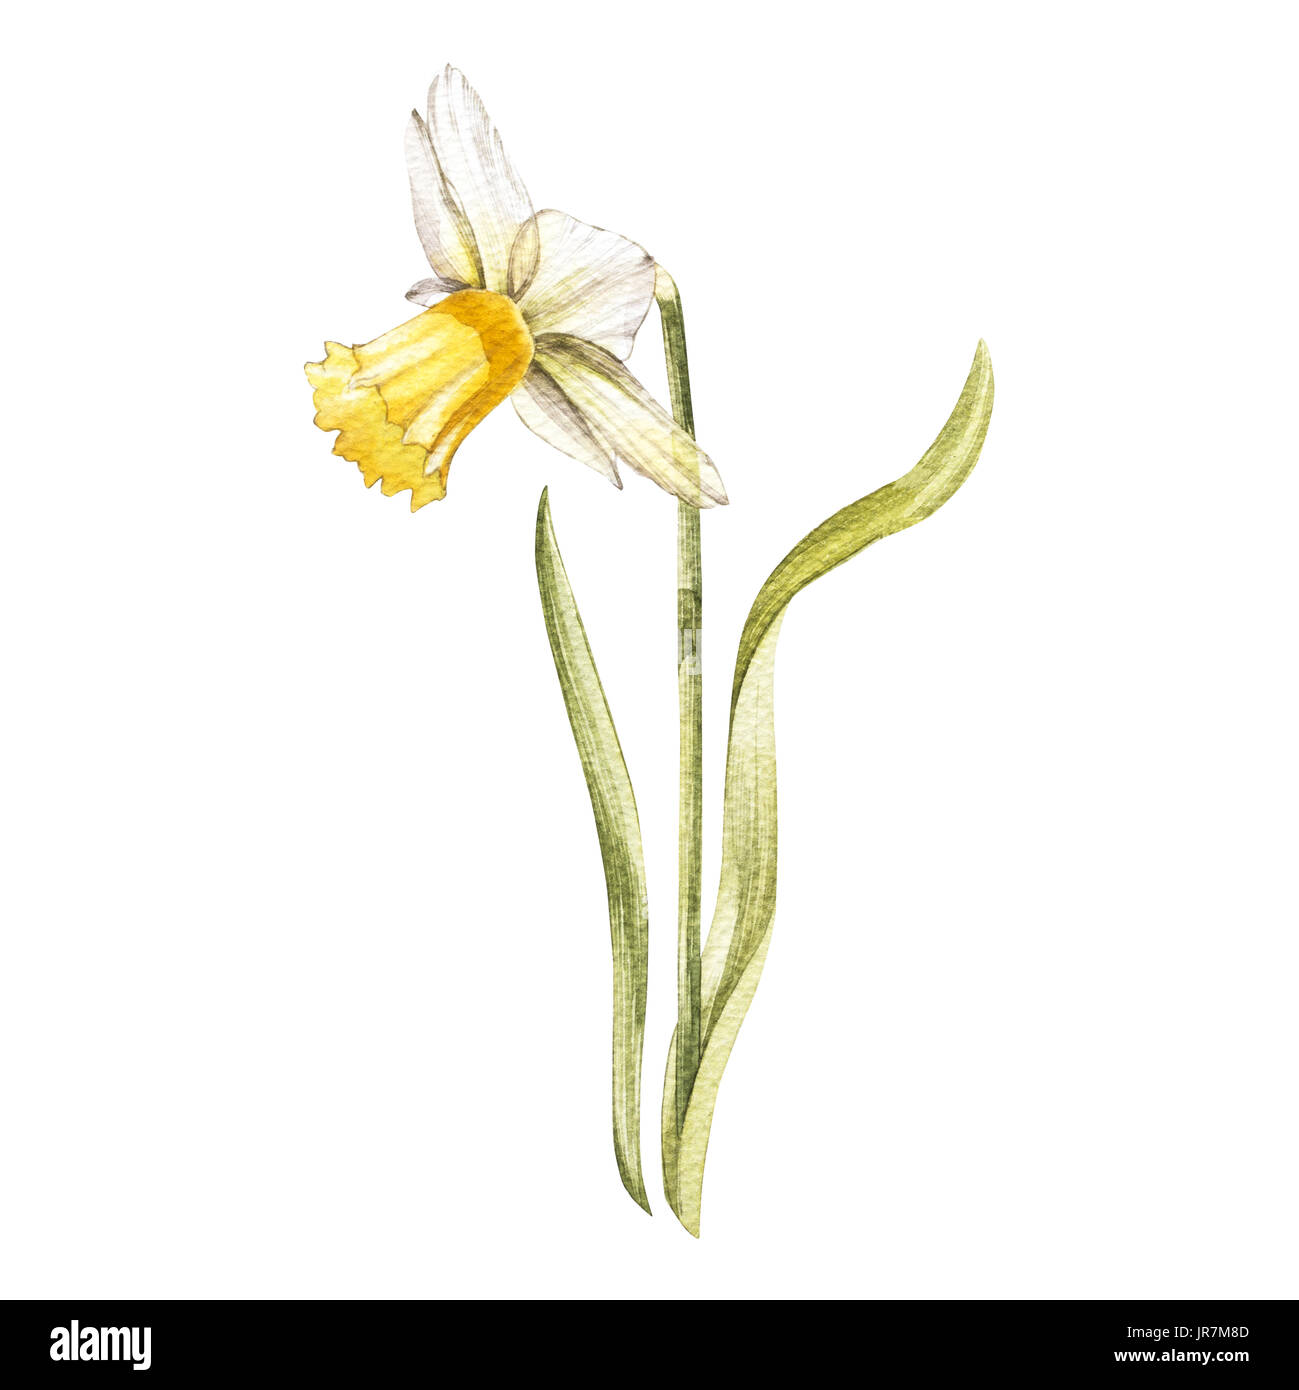 Illustration in watercolor of a Narcissus flower blossom. Floral card with flowers. Botanical illustration Stock Photo